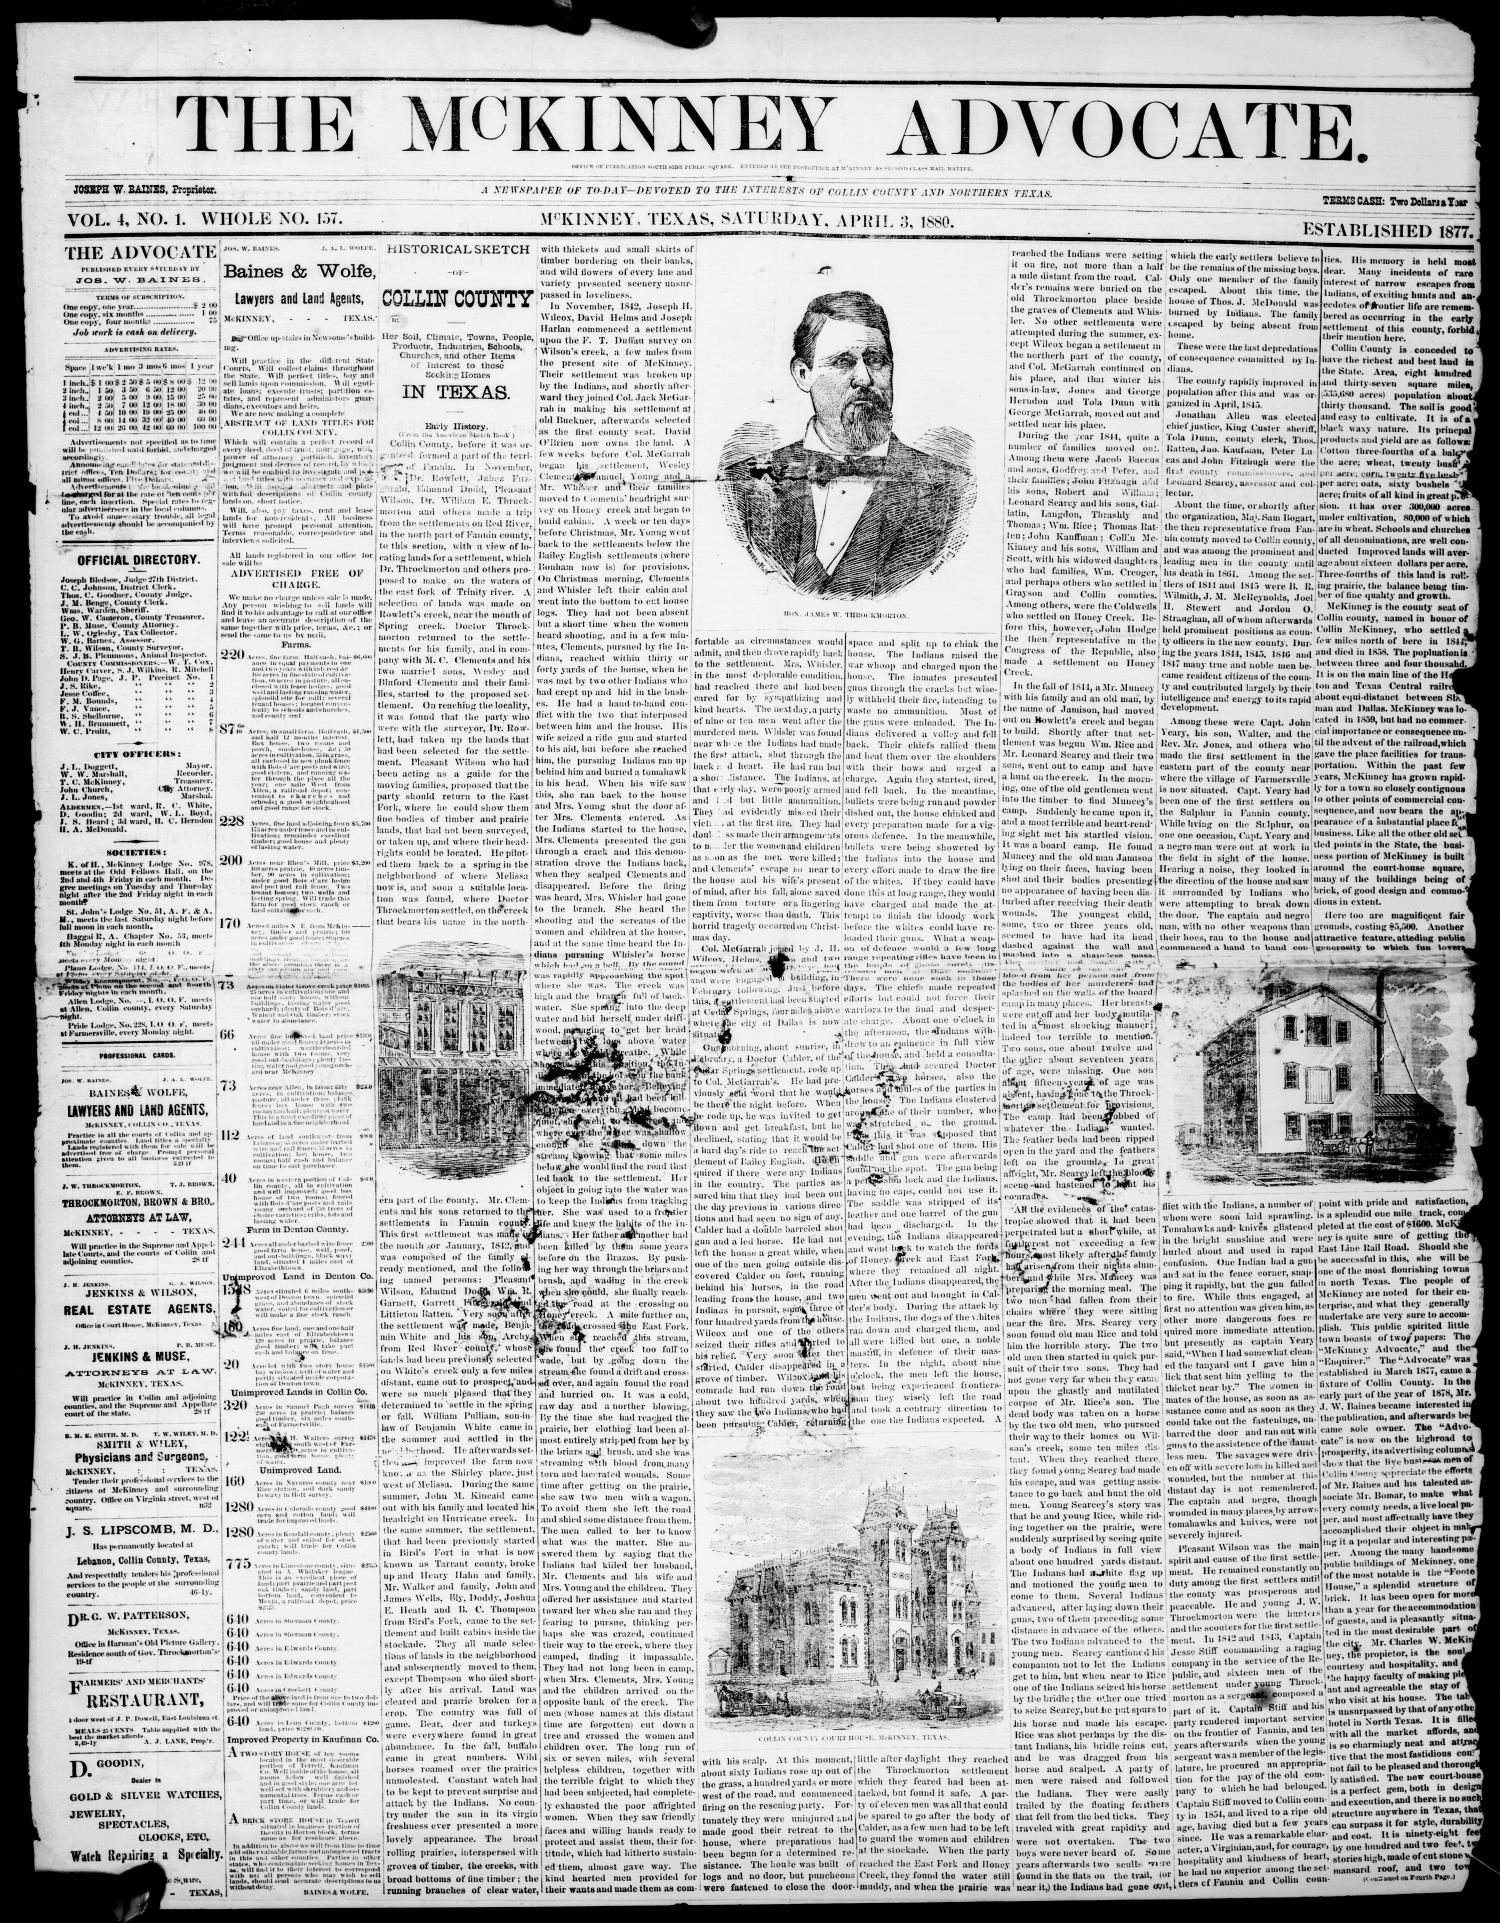 The McKinney Advocate. (McKinney, Tex.), Vol. 4, No. 1, Ed. 1 Saturday, April 3, 1880                                                                                                      [Sequence #]: 1 of 4